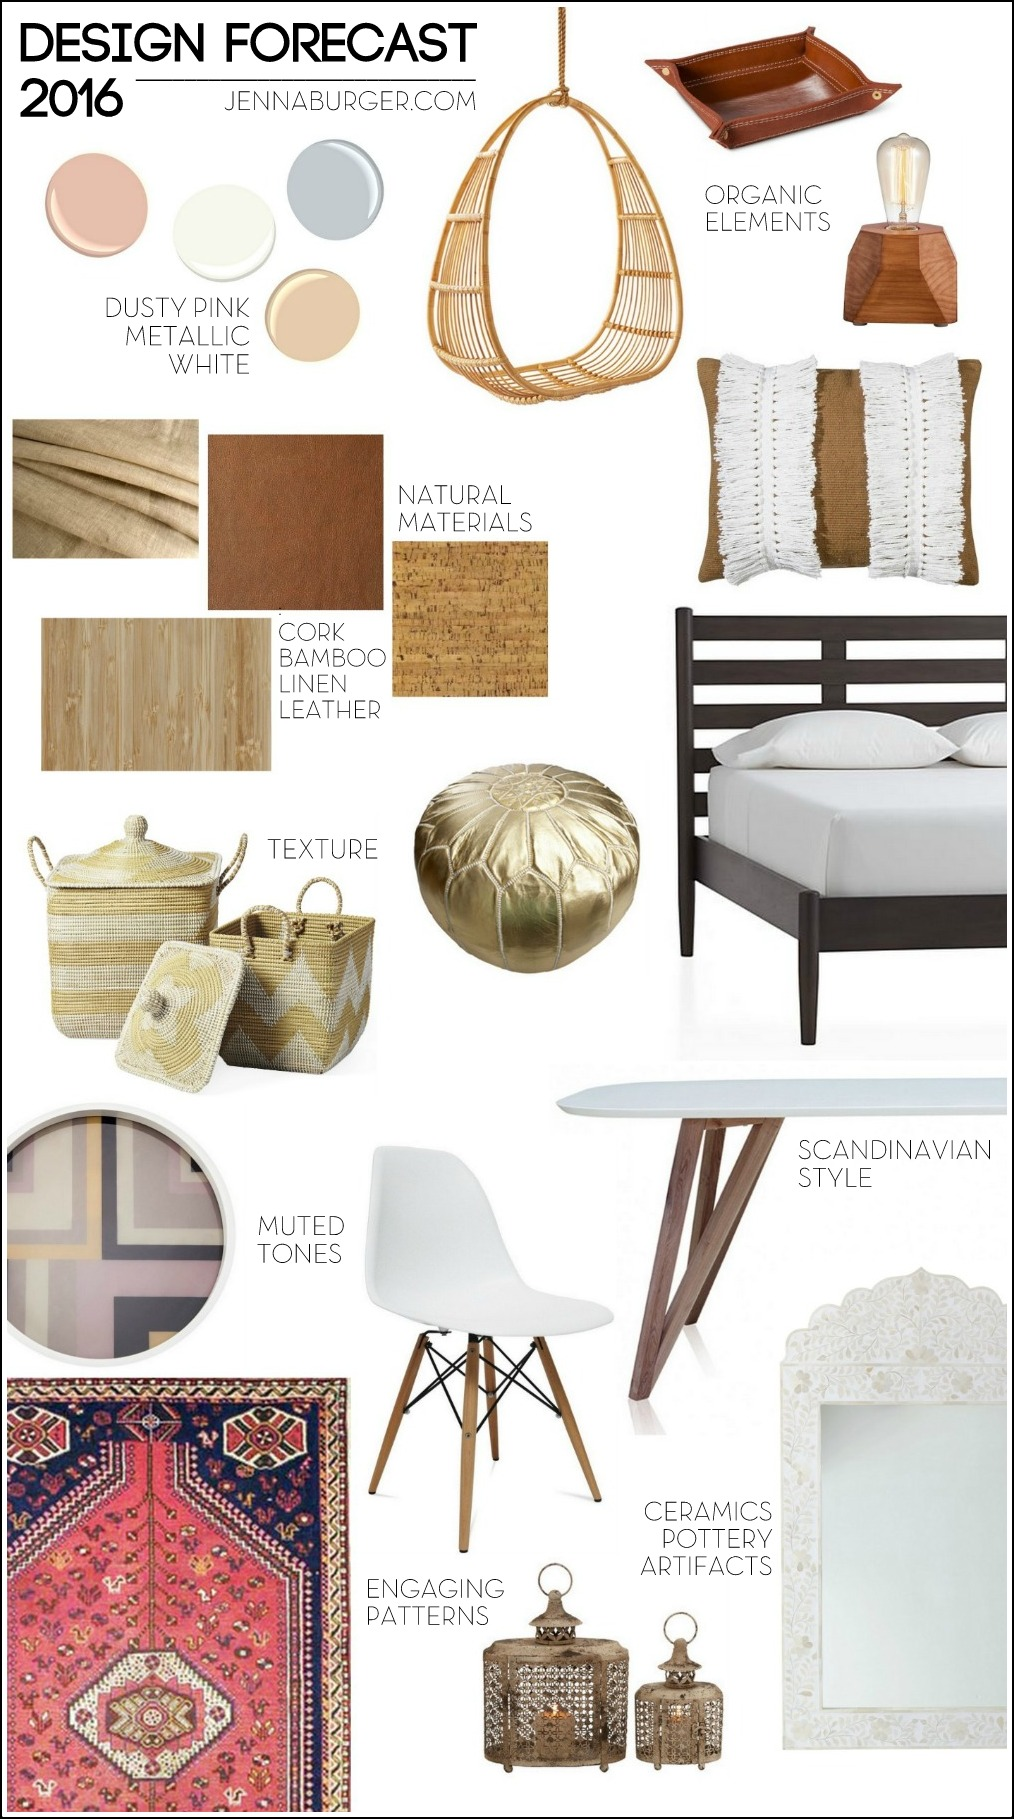 Design forecast for 2016 jenna burger for Latest trends in home decor 2015